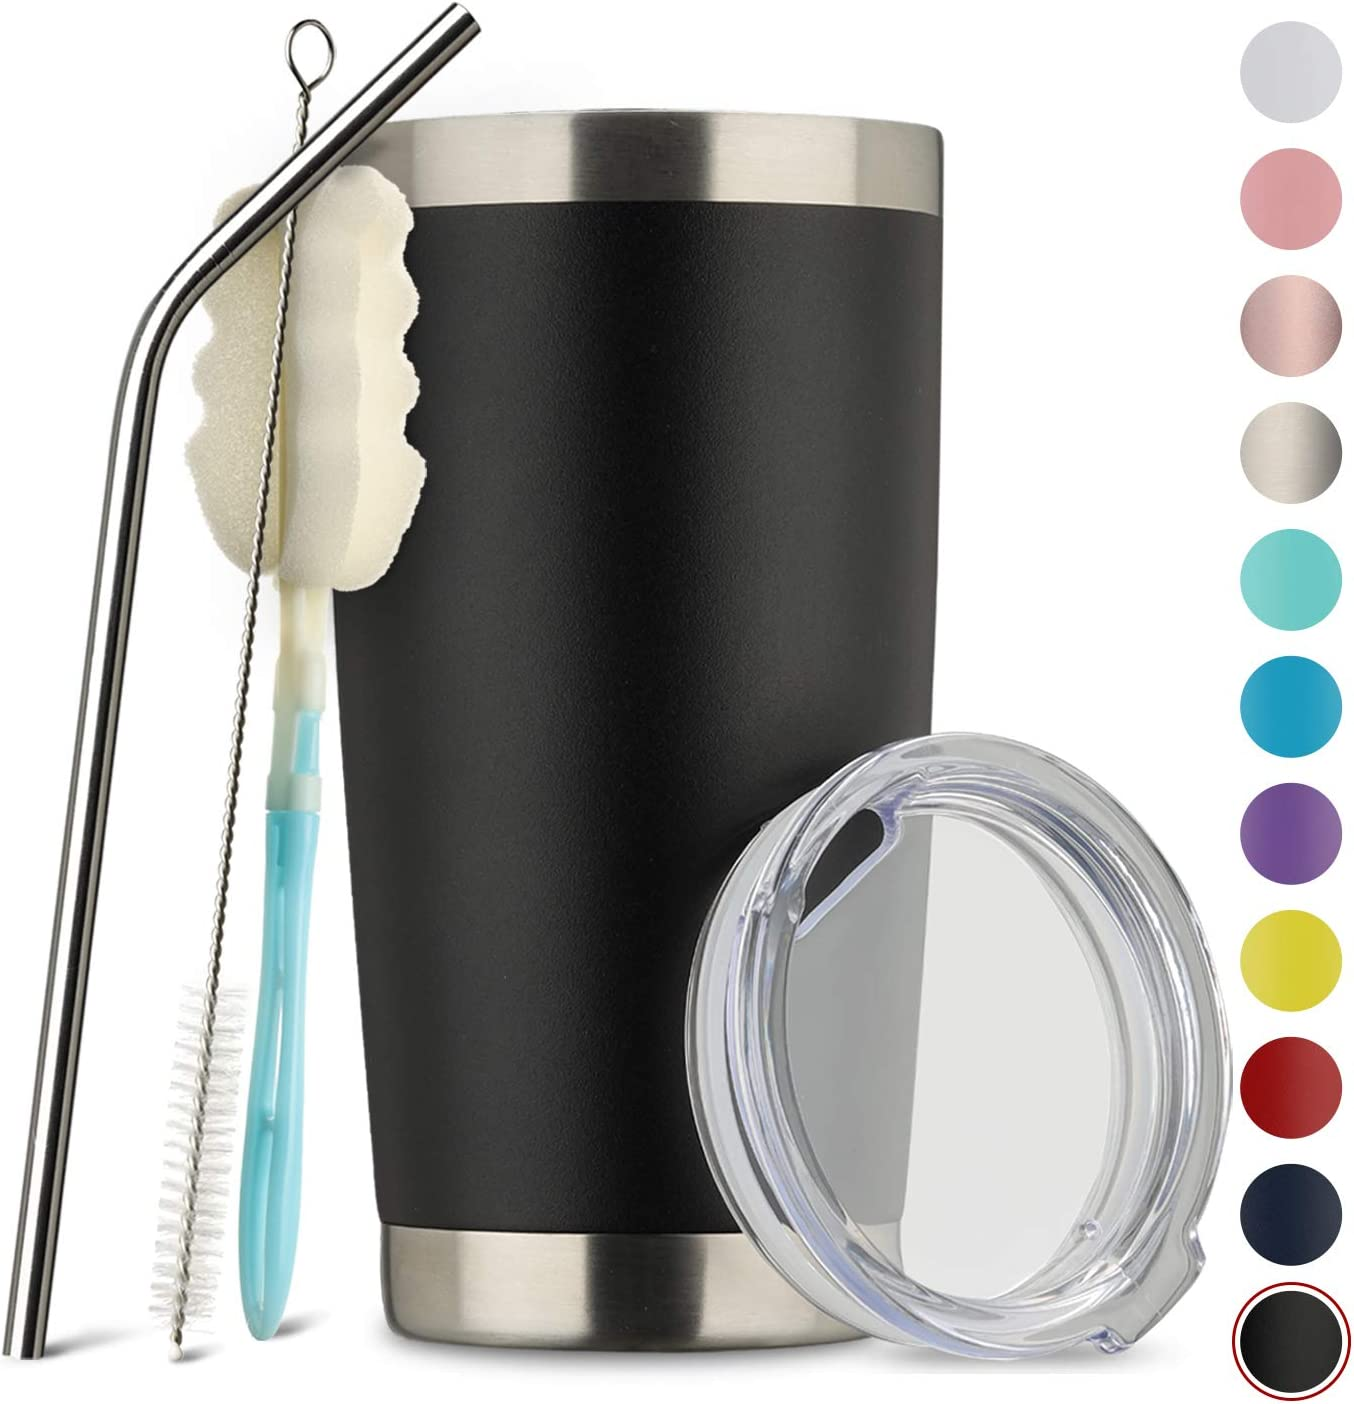 MUCHENGHY 20oz Tumbler Double Wall Stainless Steel Vacuum Insulated Travel Mug with Lid, Insulated Coffee Cup Travel Mug, 1 Straws,2 brush (Black, 1)